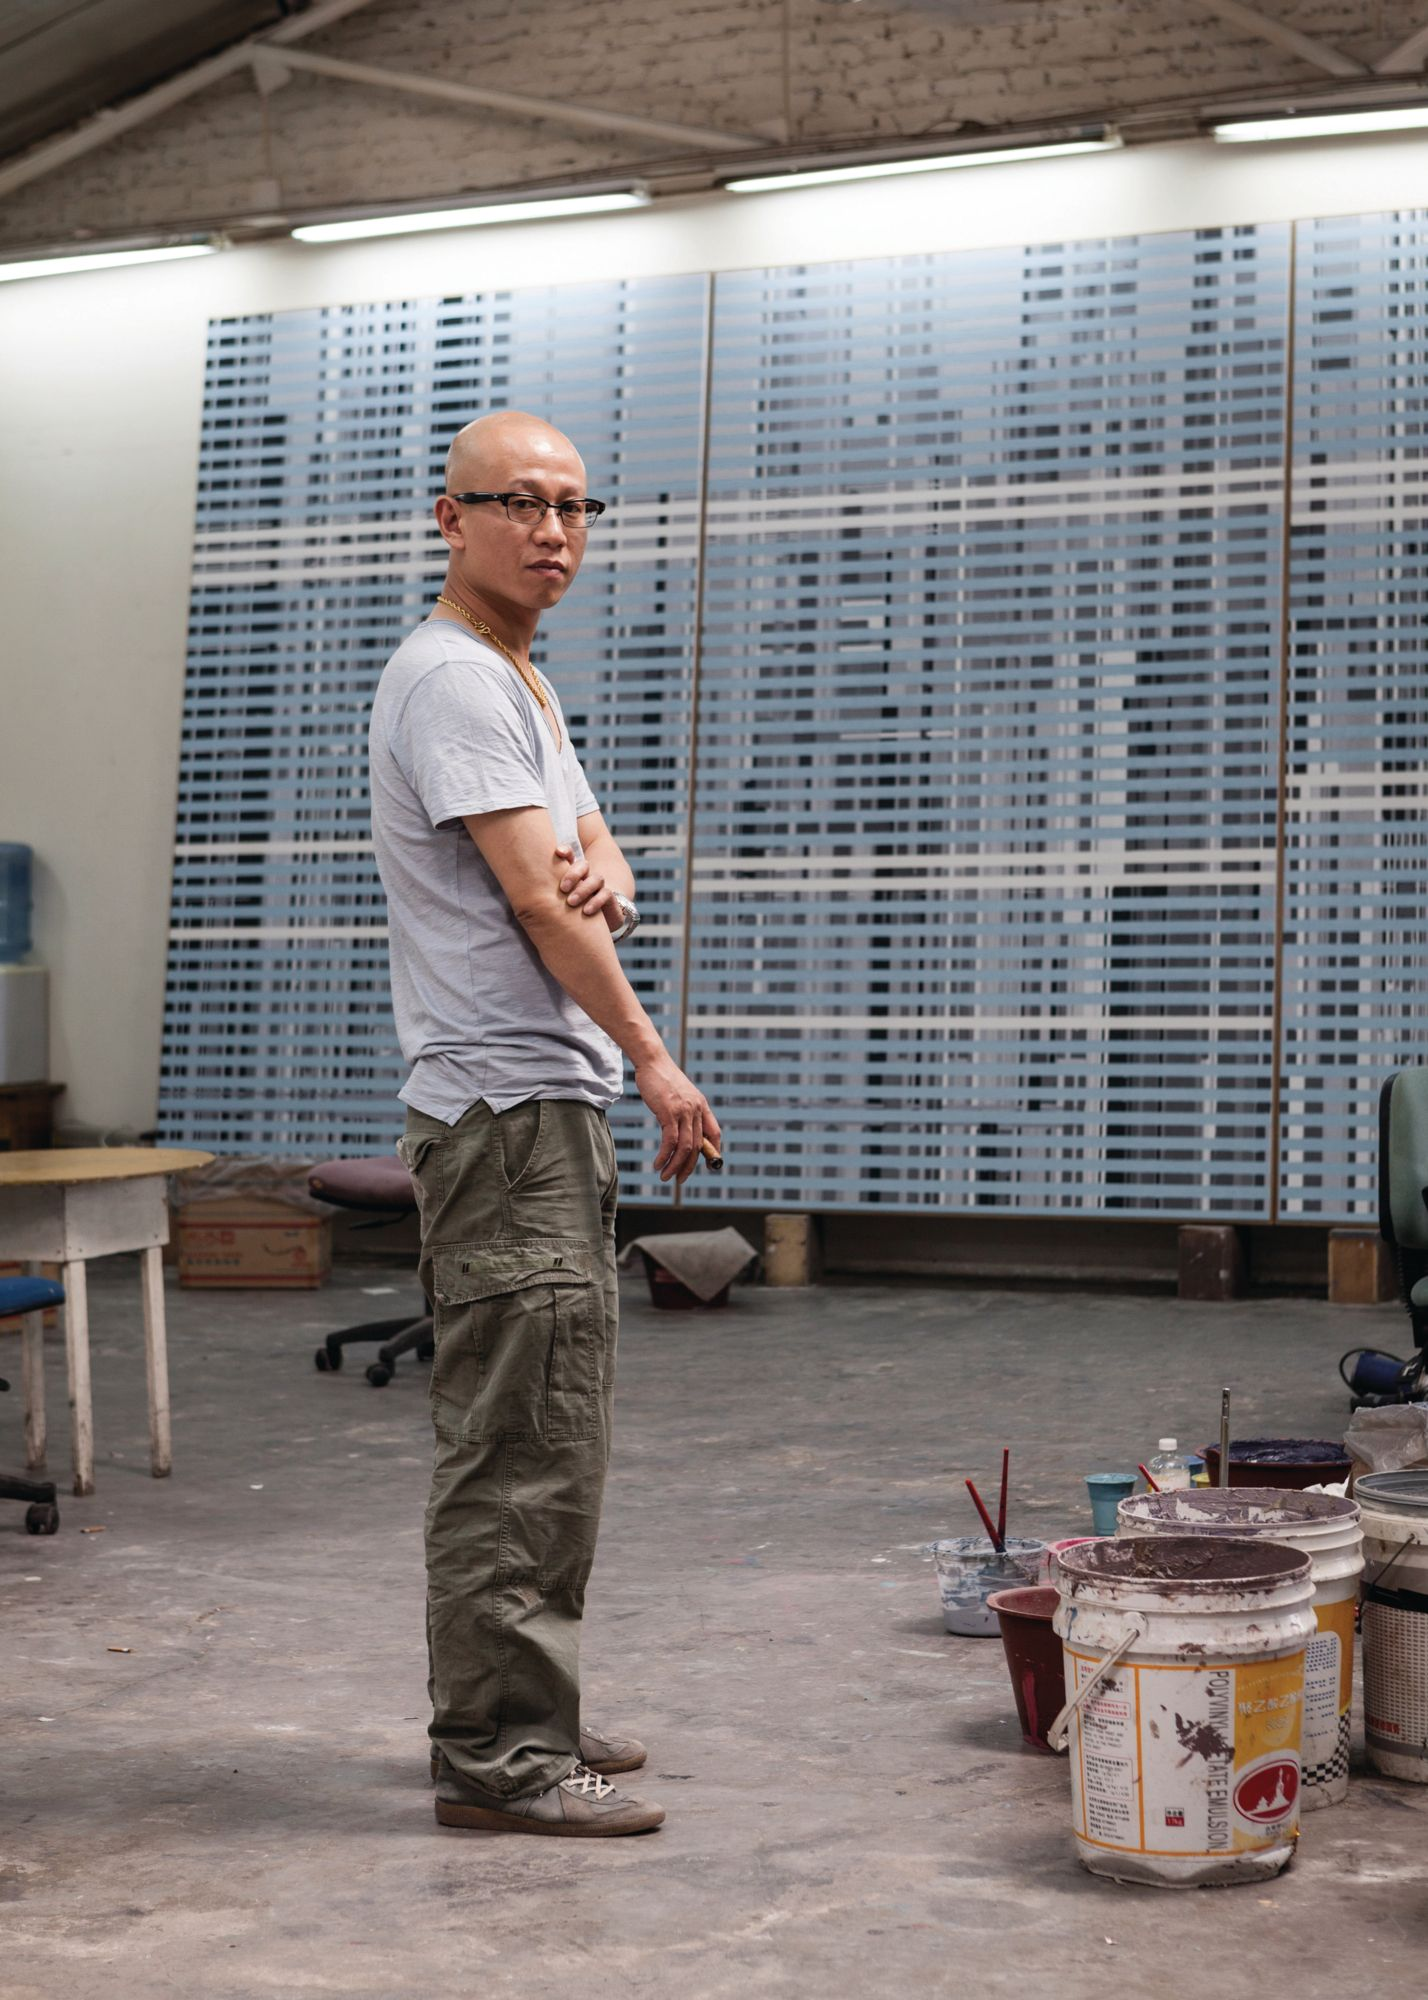 Chinese Artist Liu Wei Discusses His Upcoming Exhibition And Quest To Create Thought-Provoking Artworks